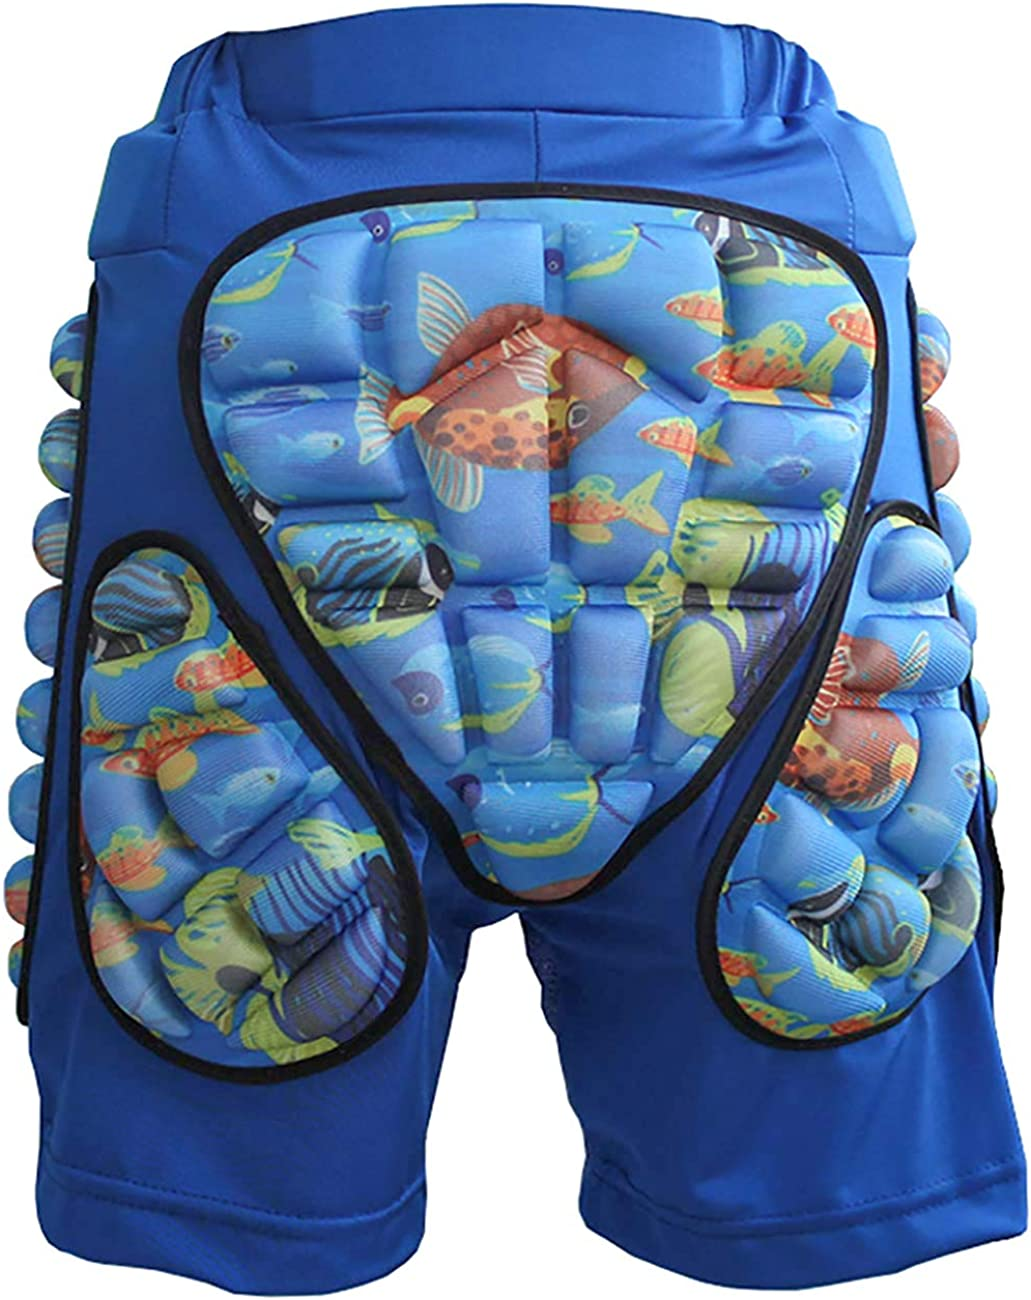 JMsDream 3D Padded Protection Hip EVA Short Pants Protective Gear for Kids /& Adults Skating Riding Roller